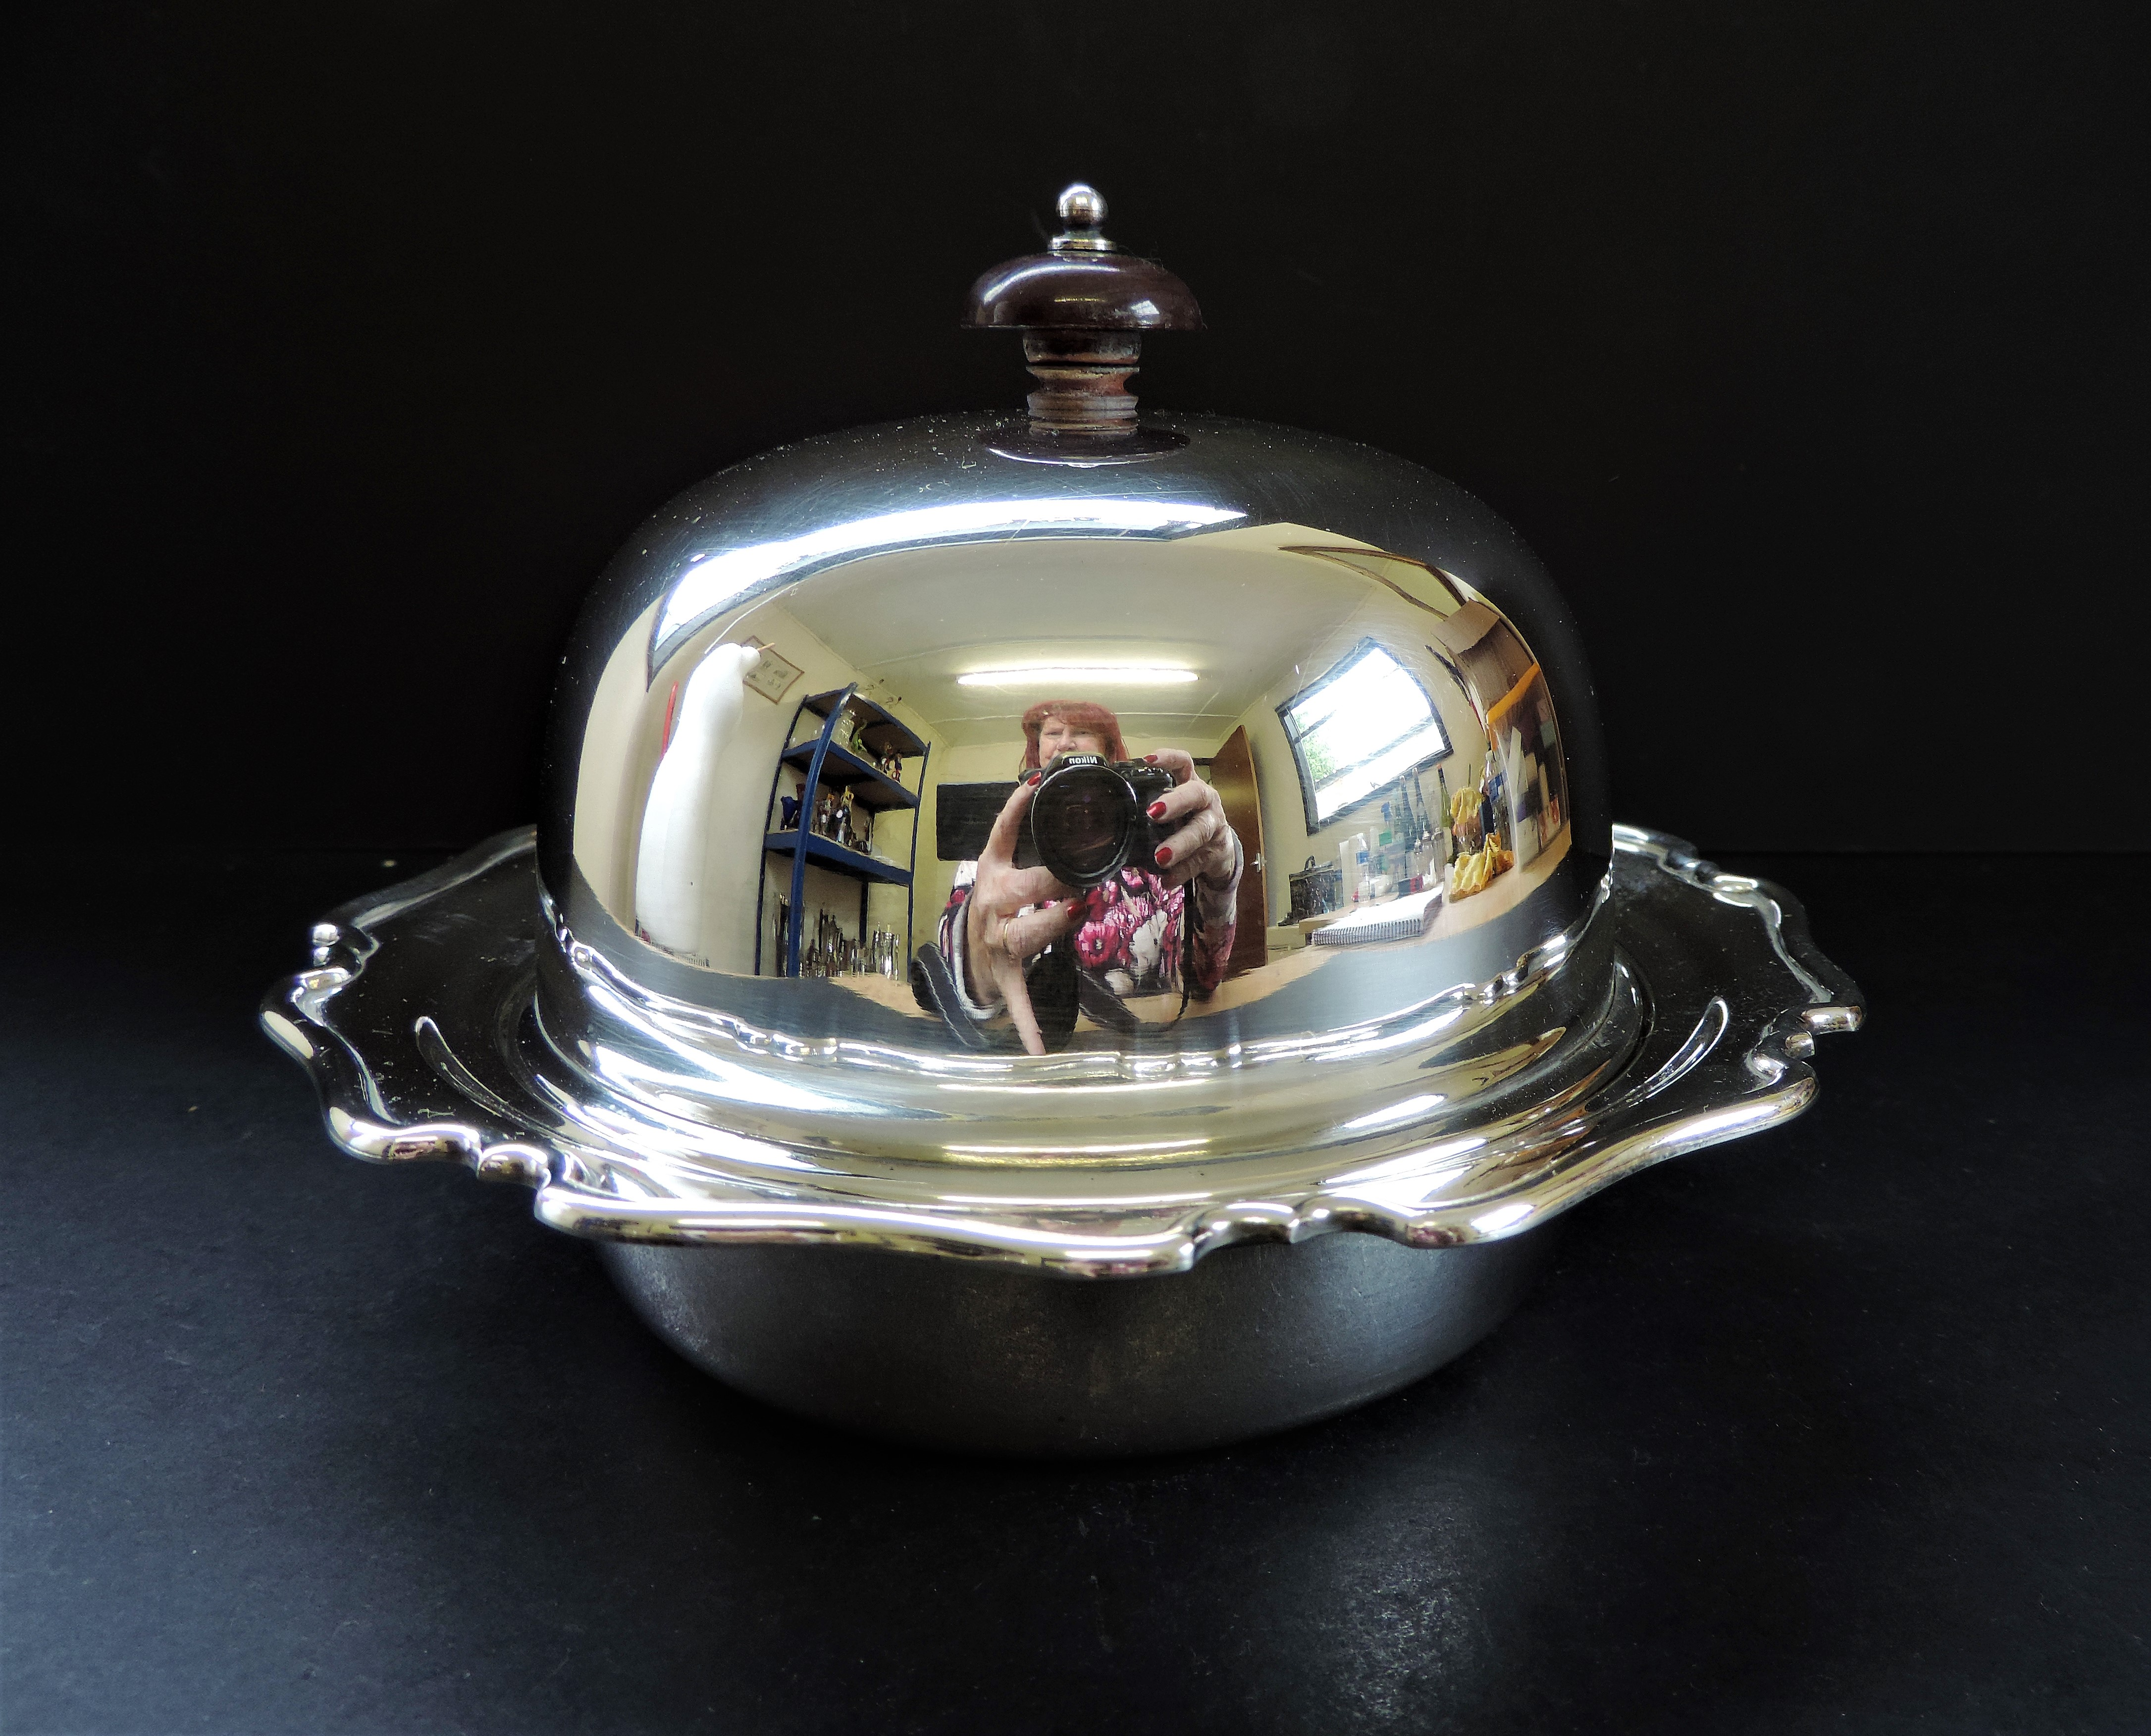 Antique Art Nouveau Silver Plated Muffin Dish/Warmer - Image 4 of 7